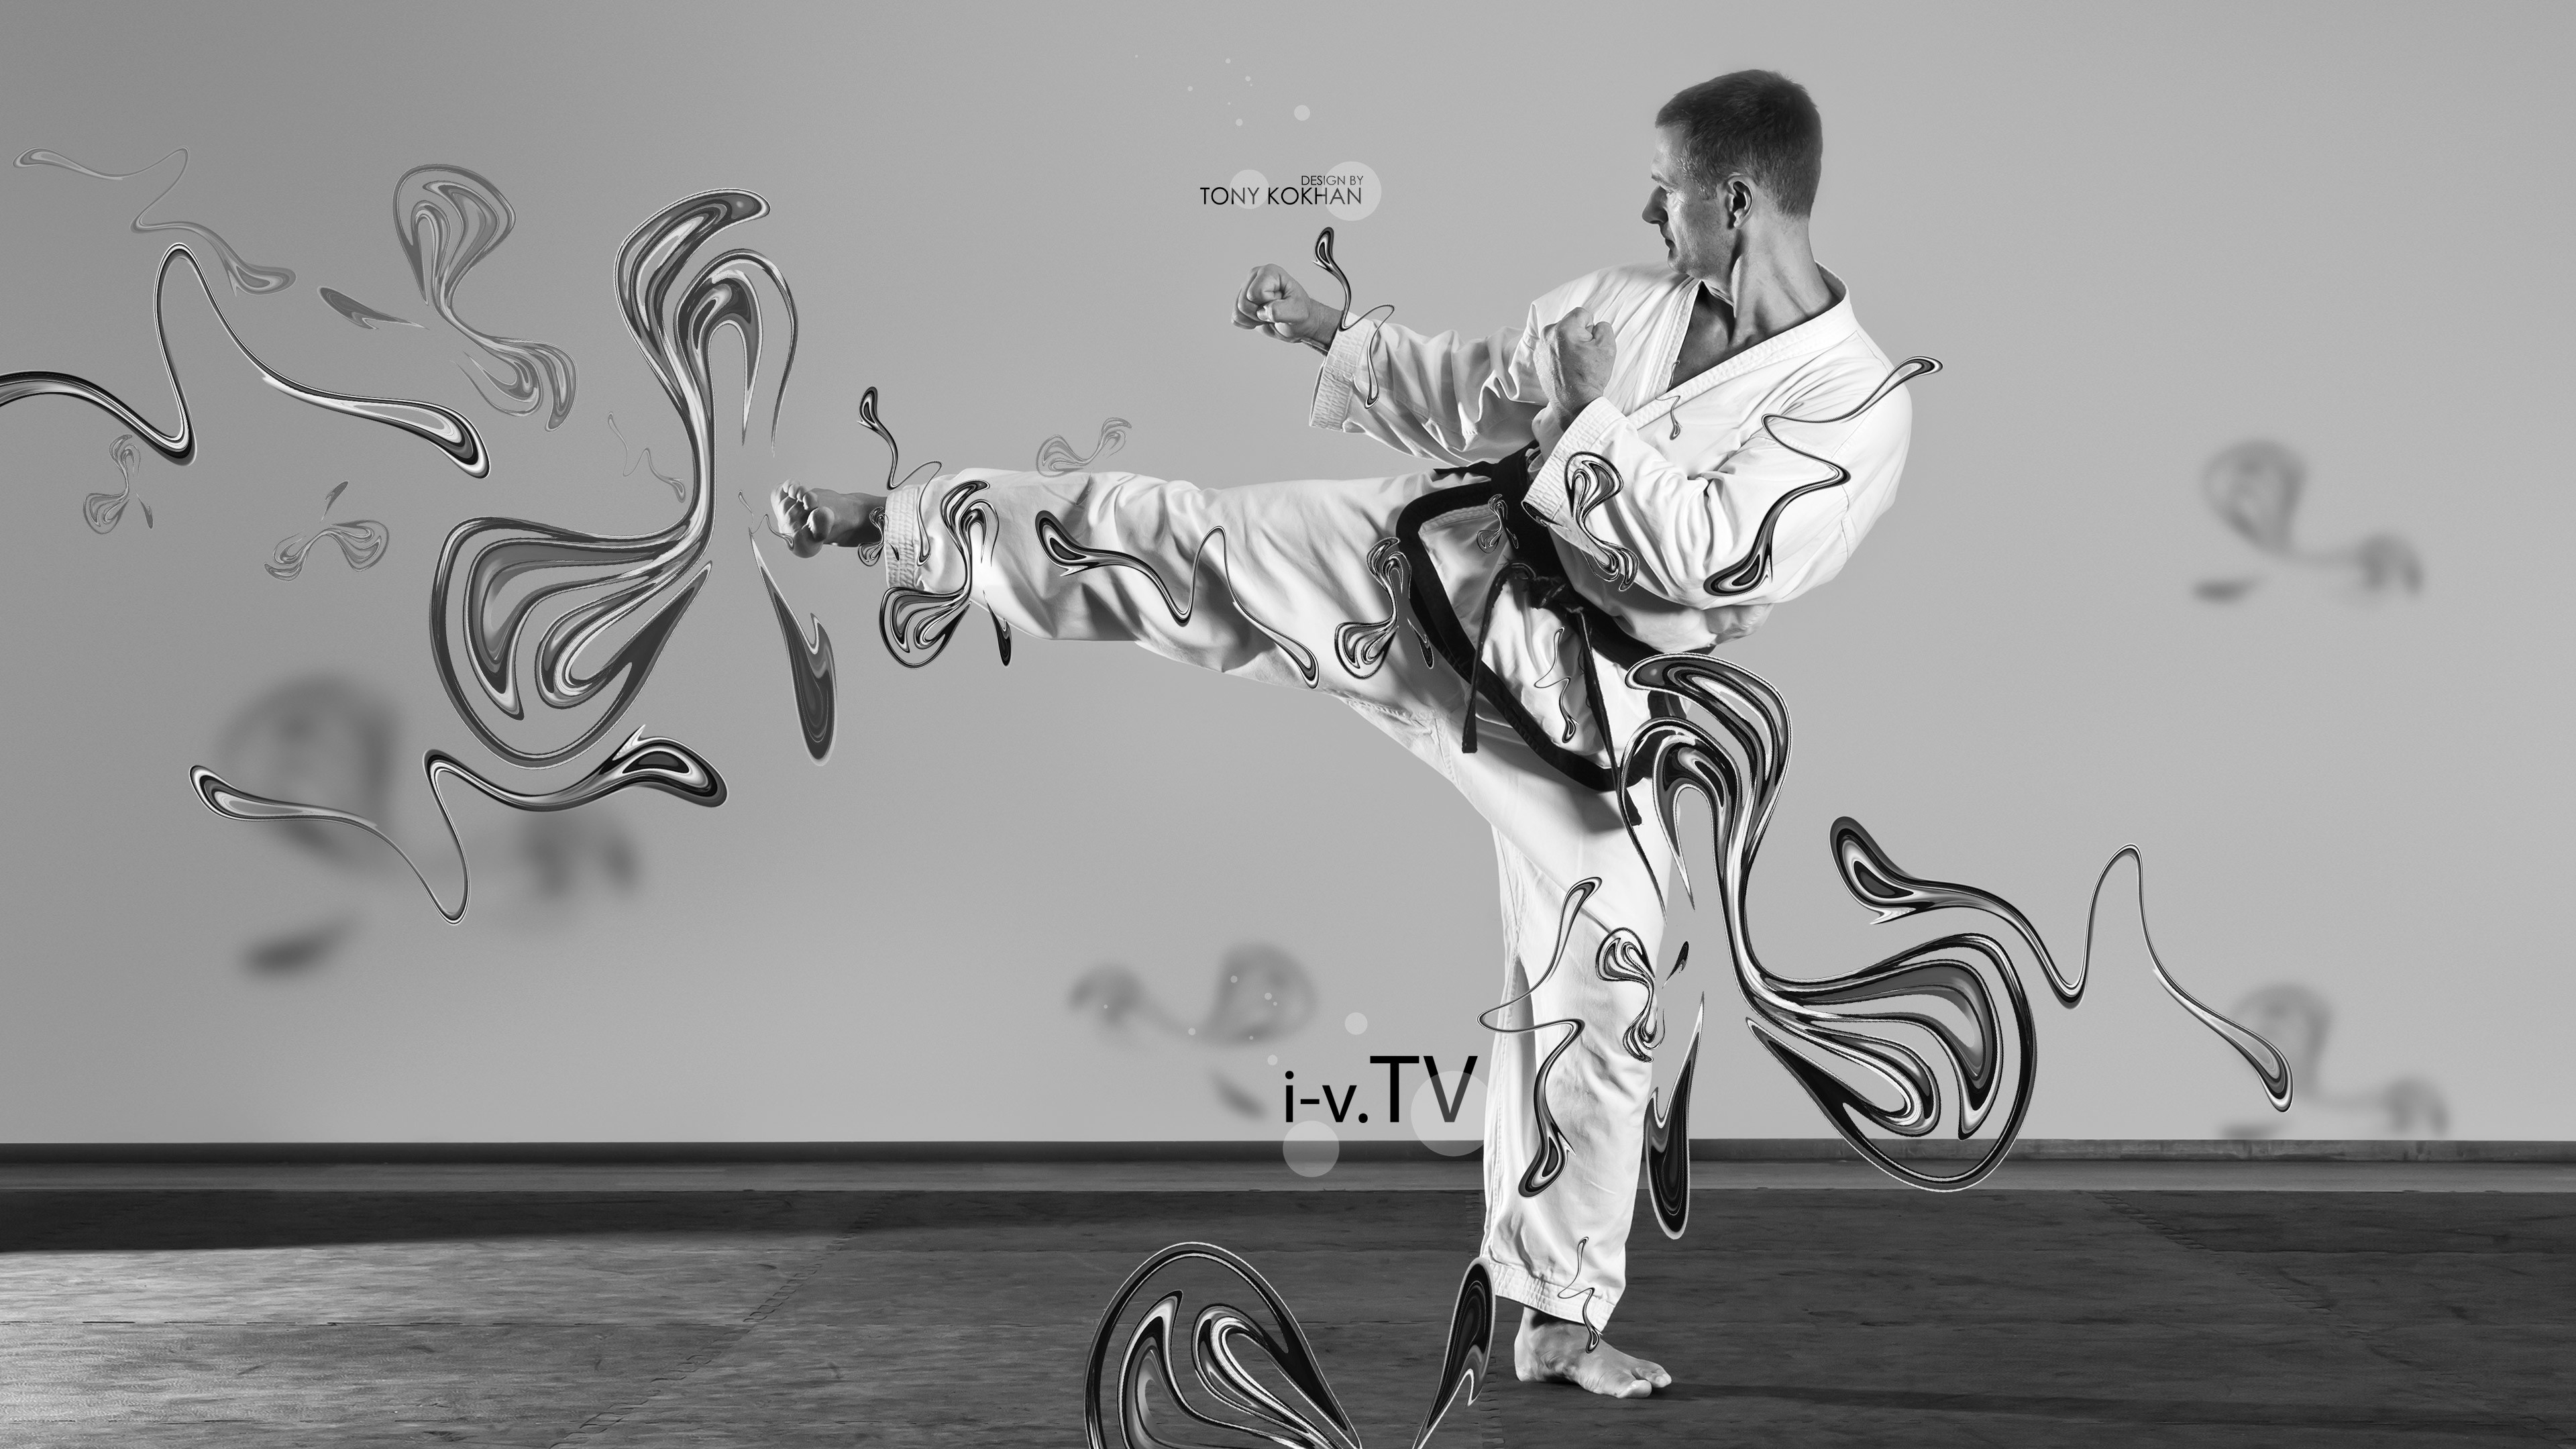 Taekwondo Itf Wallpaper 3d Taekwondo Wallpapers 60 Images